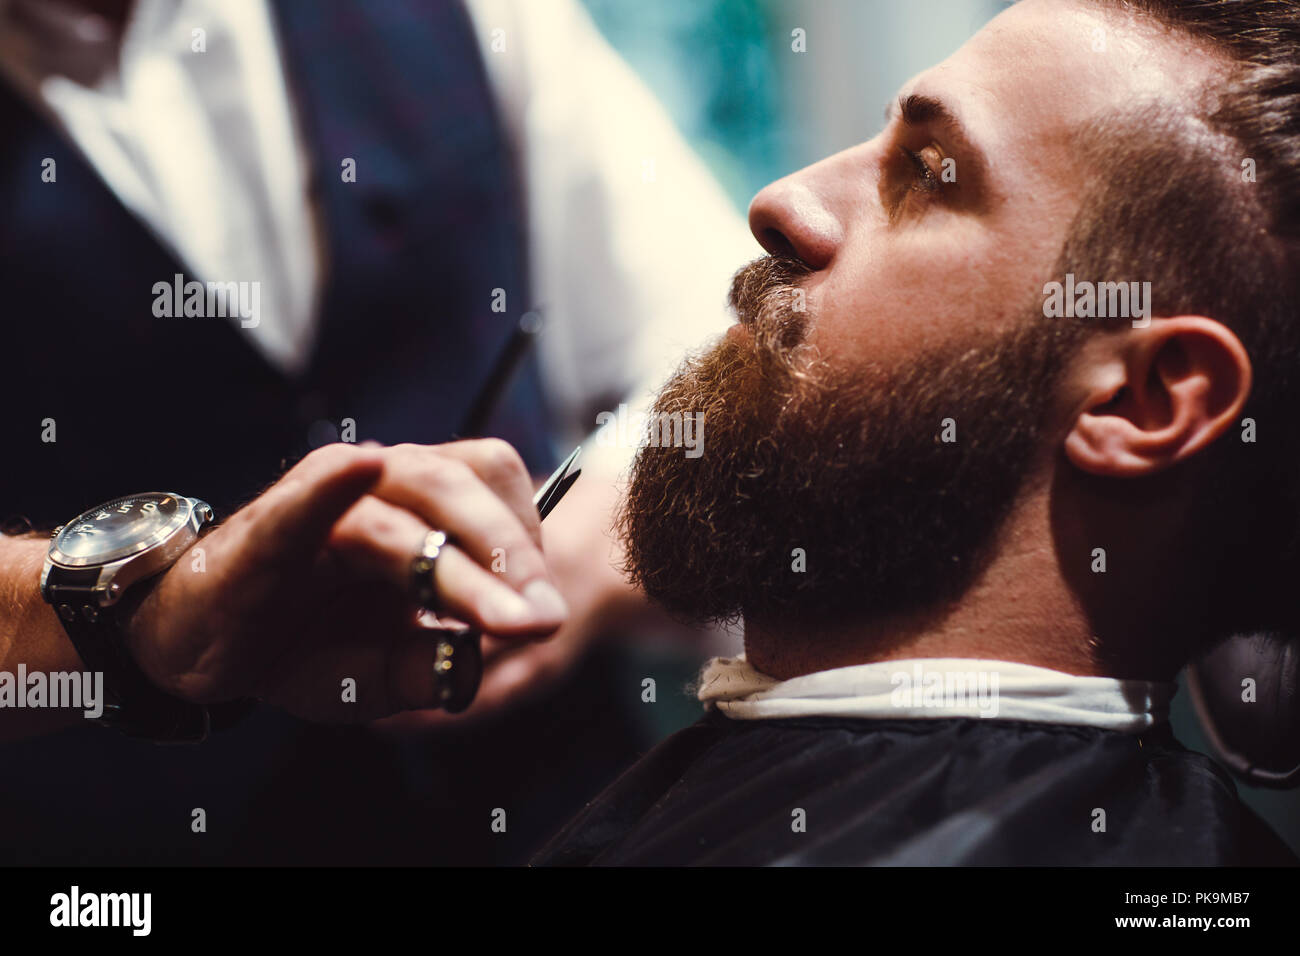 Barbershop with wooden interior. Bearded model man and barber. - Stock Image